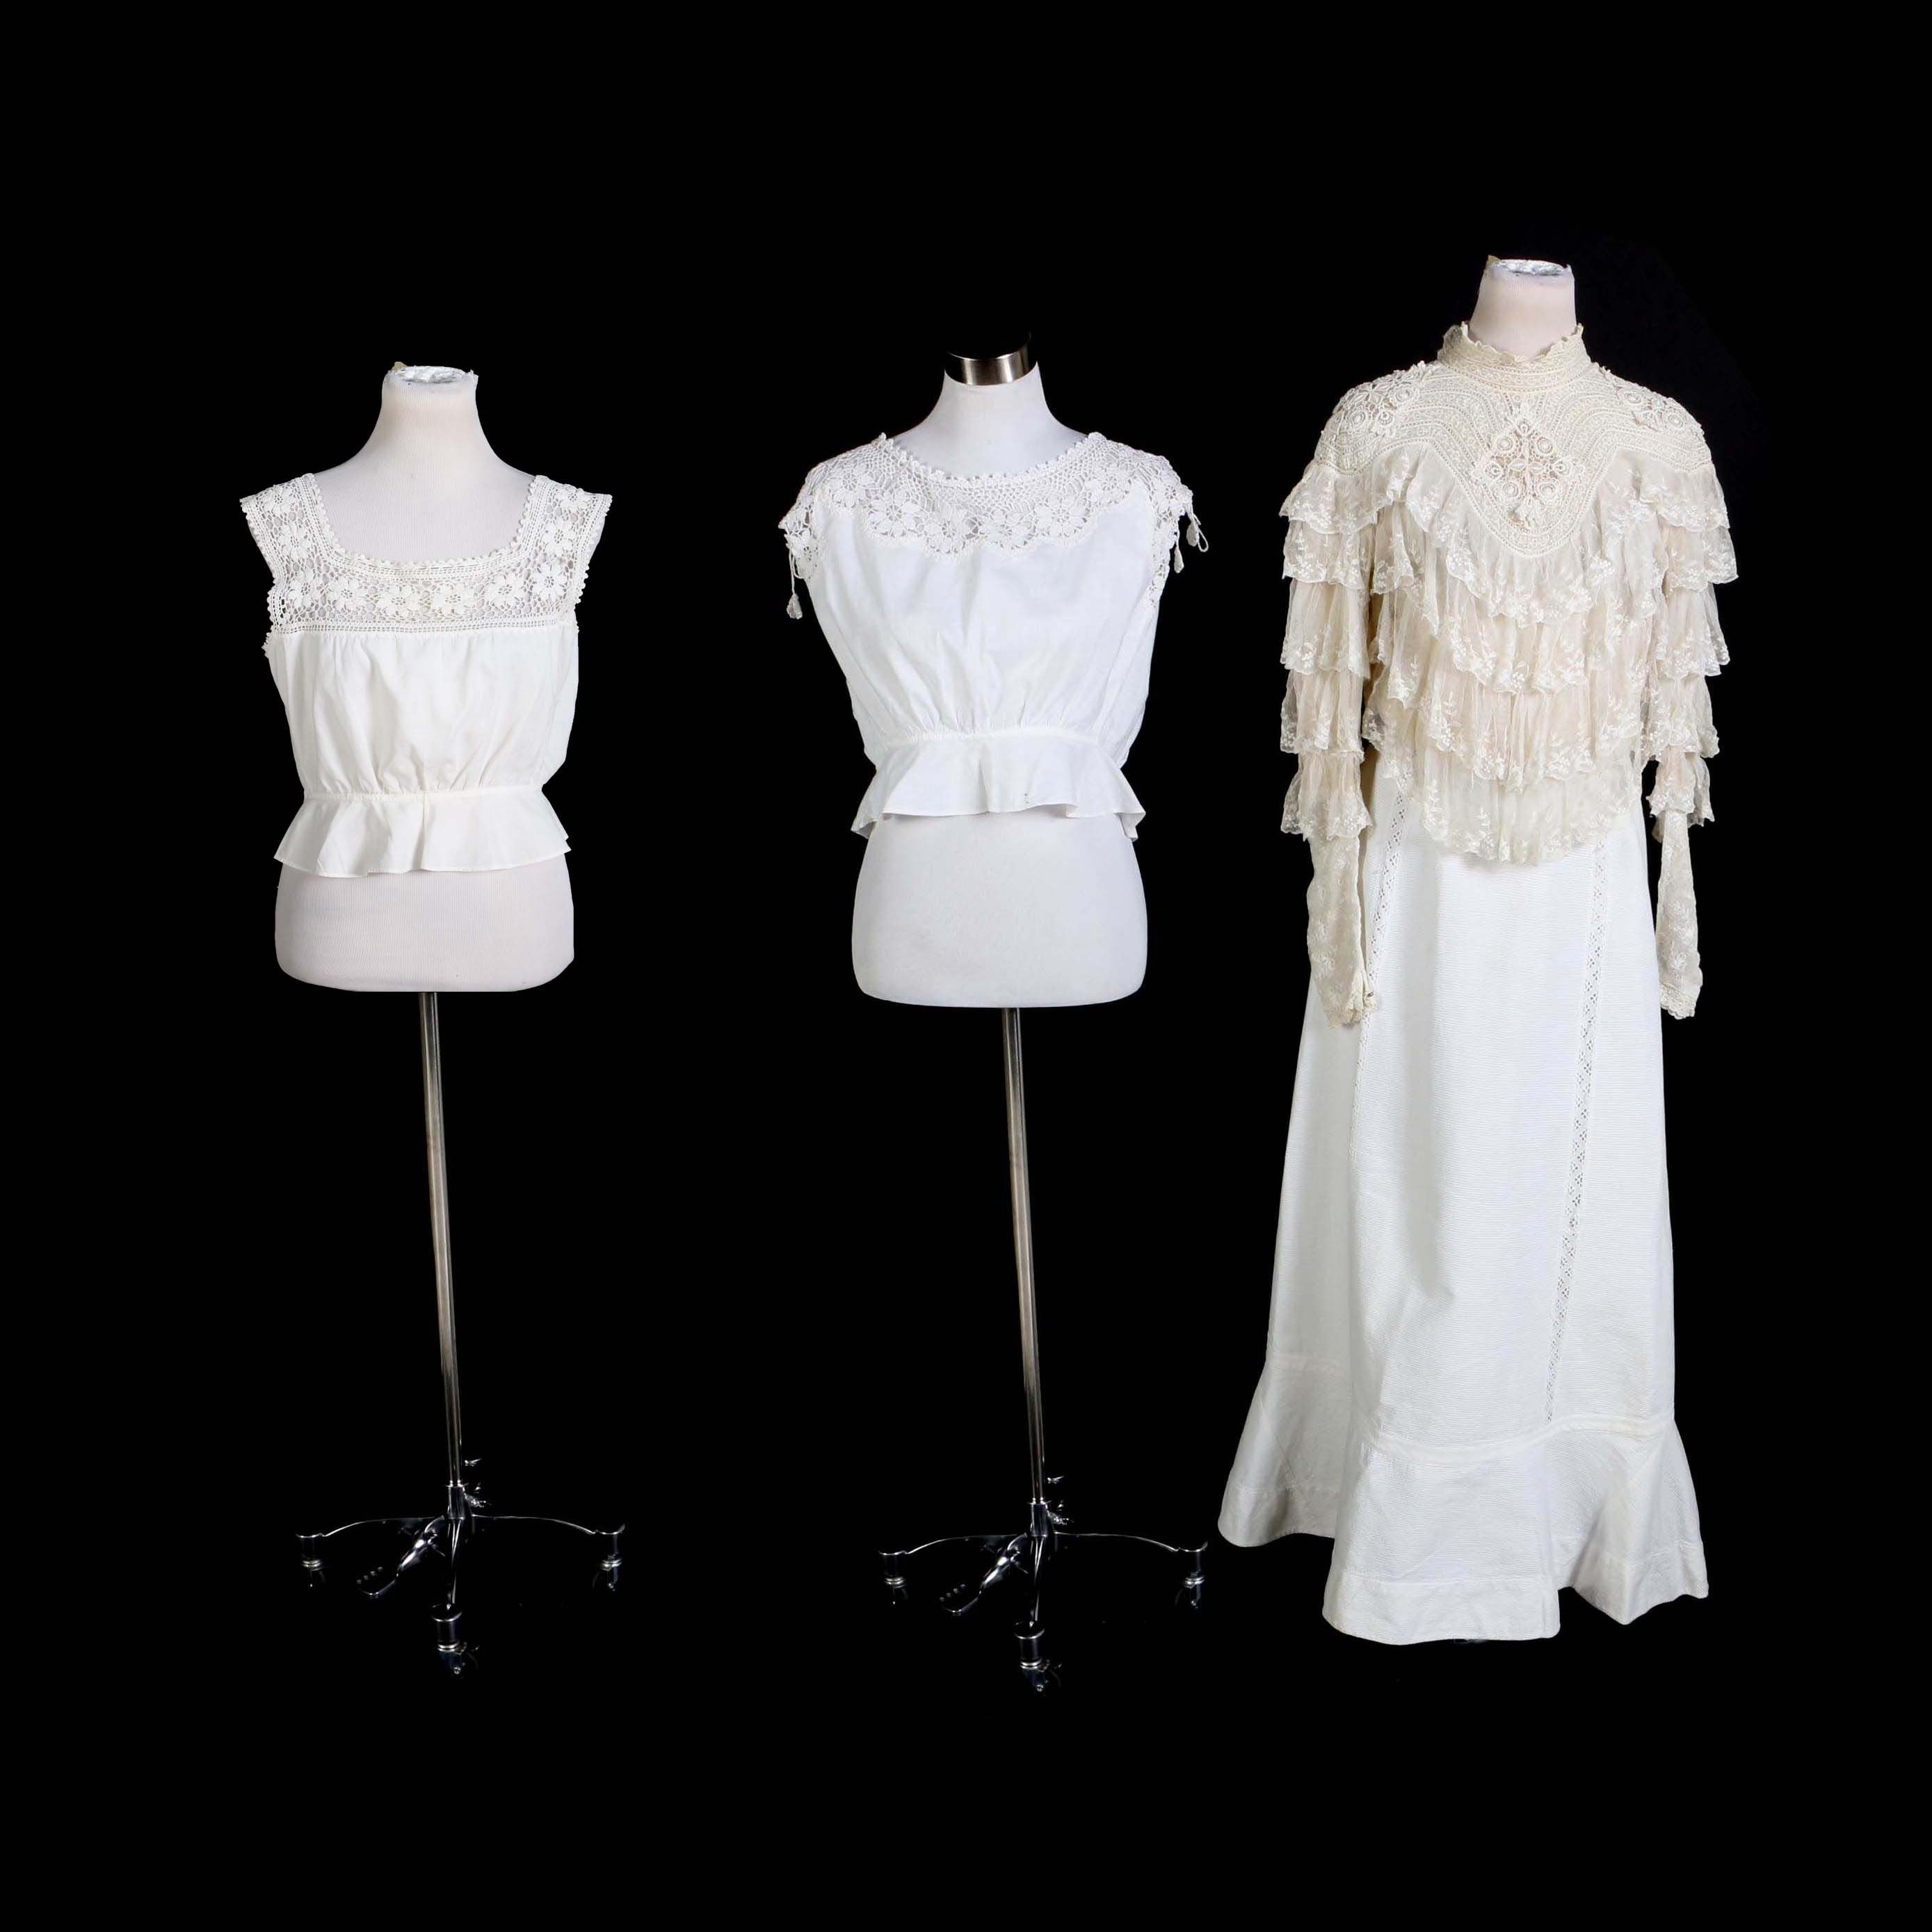 Late 19th Century Women's Clothing